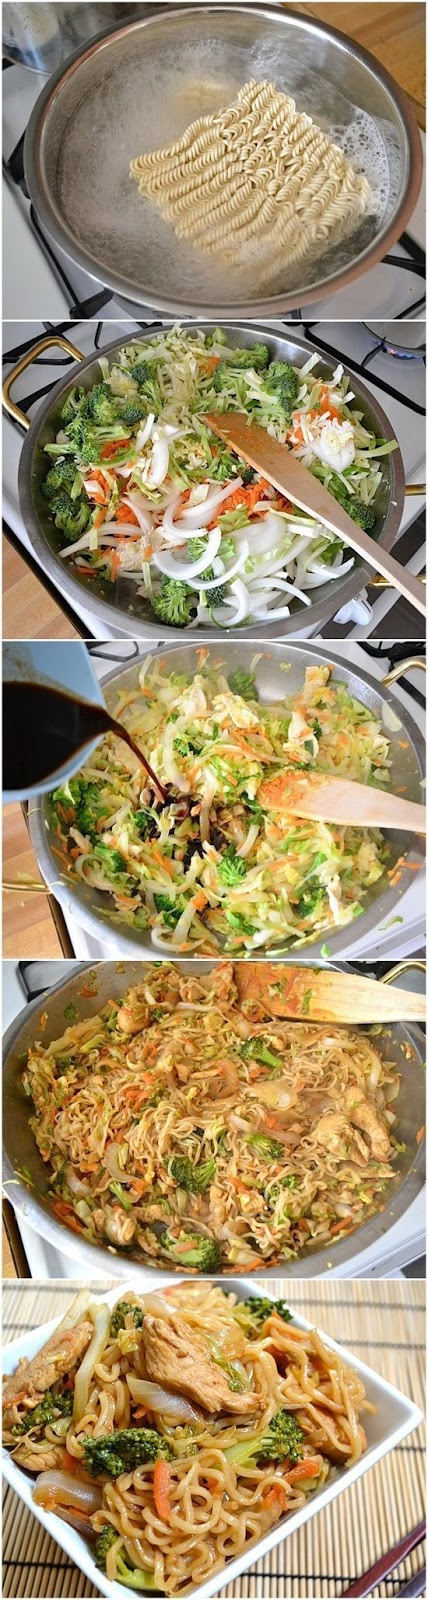 ★★★★☆ 7561 ratings | CHICKEN YAKISOBA #HEALTHYFOOD #EASYRECIPES #DINNER #LAUCH #DELICIOUS #EASY #HOLIDAYS #RECIPE #CHICKEN #YAKISOBA